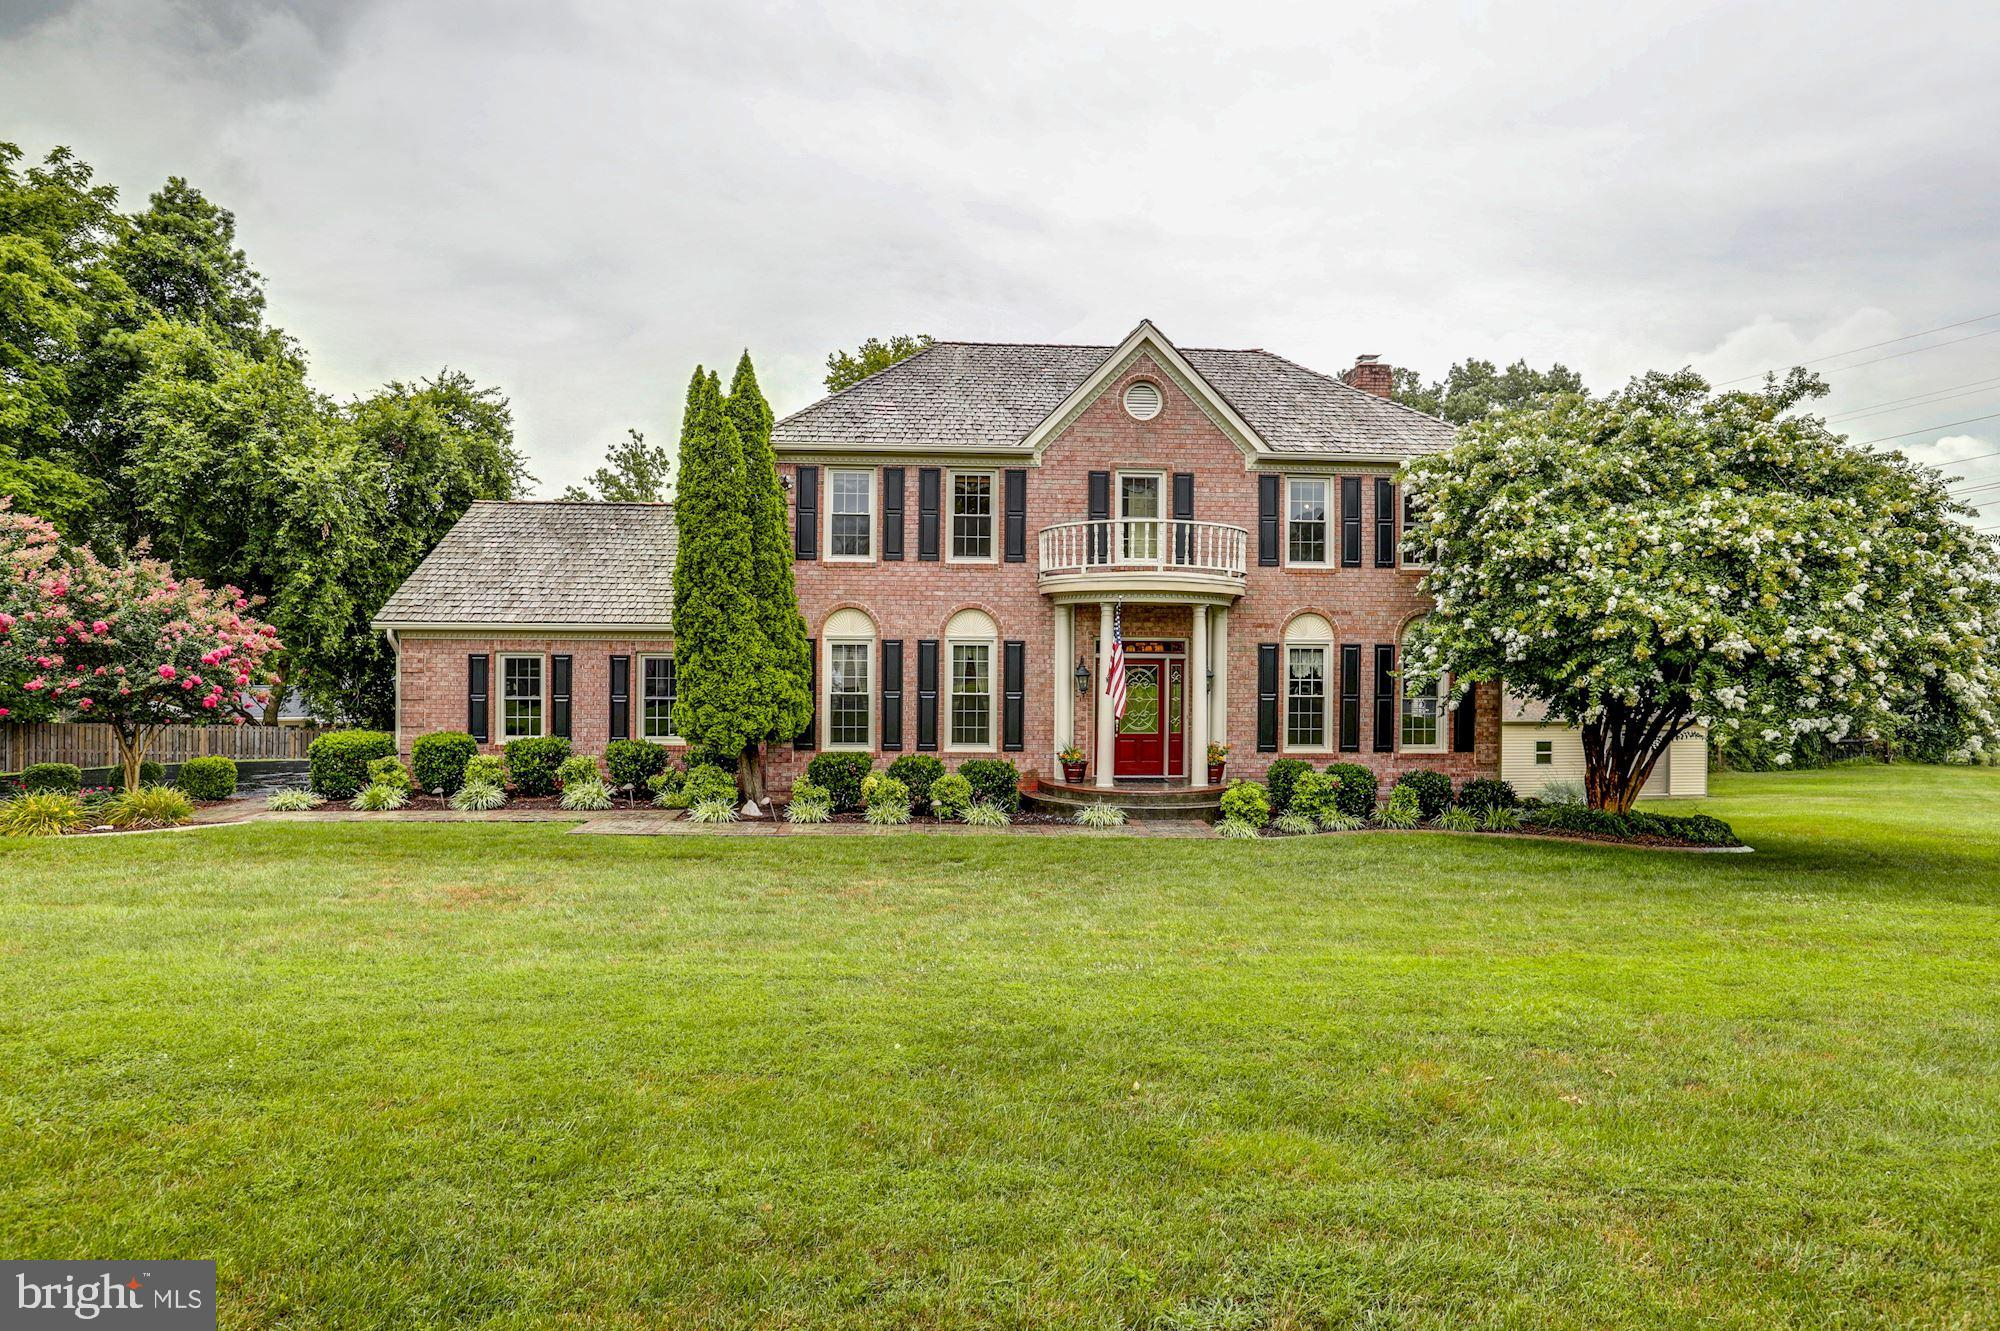 This beautifully renovated Colonial, a former model home, is sited on a gorgeous .83-acre cul-de-sac lot. The home offers over 4300 finished SQFT of well-thought out living space, a 2-car side-loading attached garage, an additional 3-car detached garage w/heating & a/c, workshop and storage area. The home features formal living and dining rooms, a gourmet kitchen that opens to a bright sunroom w/skylights and family room w/gas fireplace, huge master bedroom w/luxury salon bathroom and heated floors. Extensive molding, hardwood and upgraded tile flooring throughout. The finished walk-out basement has a wet bar, exercise room, a den/5th bedroom w/full bathroom. Plenty of outdoor entertaining and living space including composite deck, stone patio and level lawn w/privacy and stunning views. Recent updates include repaving and extended driveway to a newly-built rear detached garage (36x24, insulated, drywall, concrete sidewalk, dedicated 200-amp service with separate meter, split system heating/ac), all new argon filled Anderson windows & skylights, fully renovated bathrooms, capped sidewalk and front stoop w/stamped concrete, new septic pumps, fireplace insert, new paint & flooring, composite decking & rails, new paver patio & knee wall and professional landscaping.